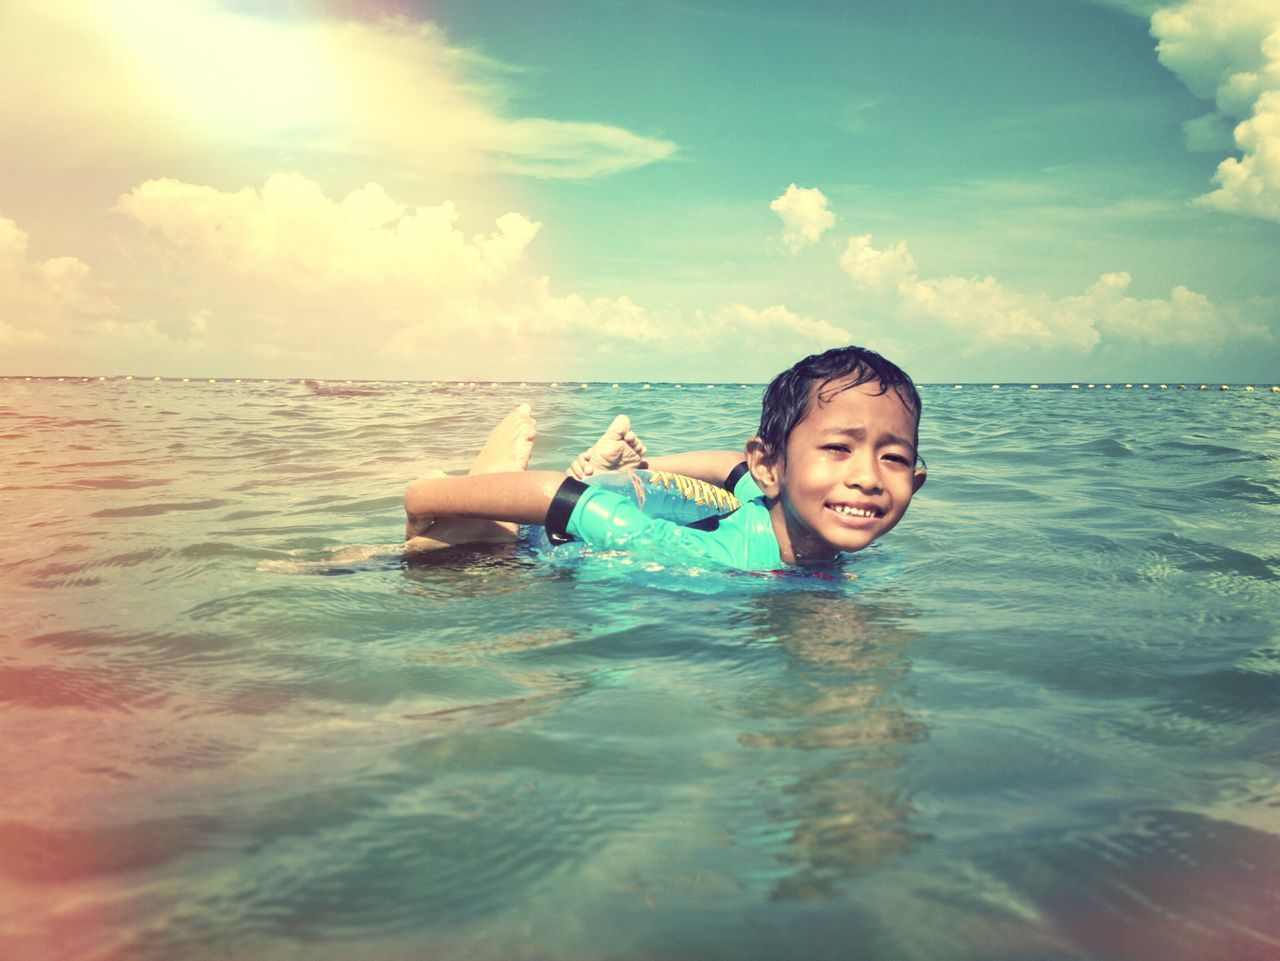 Water Smiling Vacations Summer Sea Enjoyment Cheerful Fun Happiness Cloud - Sky Outdoors Leisure Activity People Portrait Relaxation Sky Swim Sea Life Floating On Water Nature Human Body Part Boy Port Dickson Malaysia Negeri Sembilan